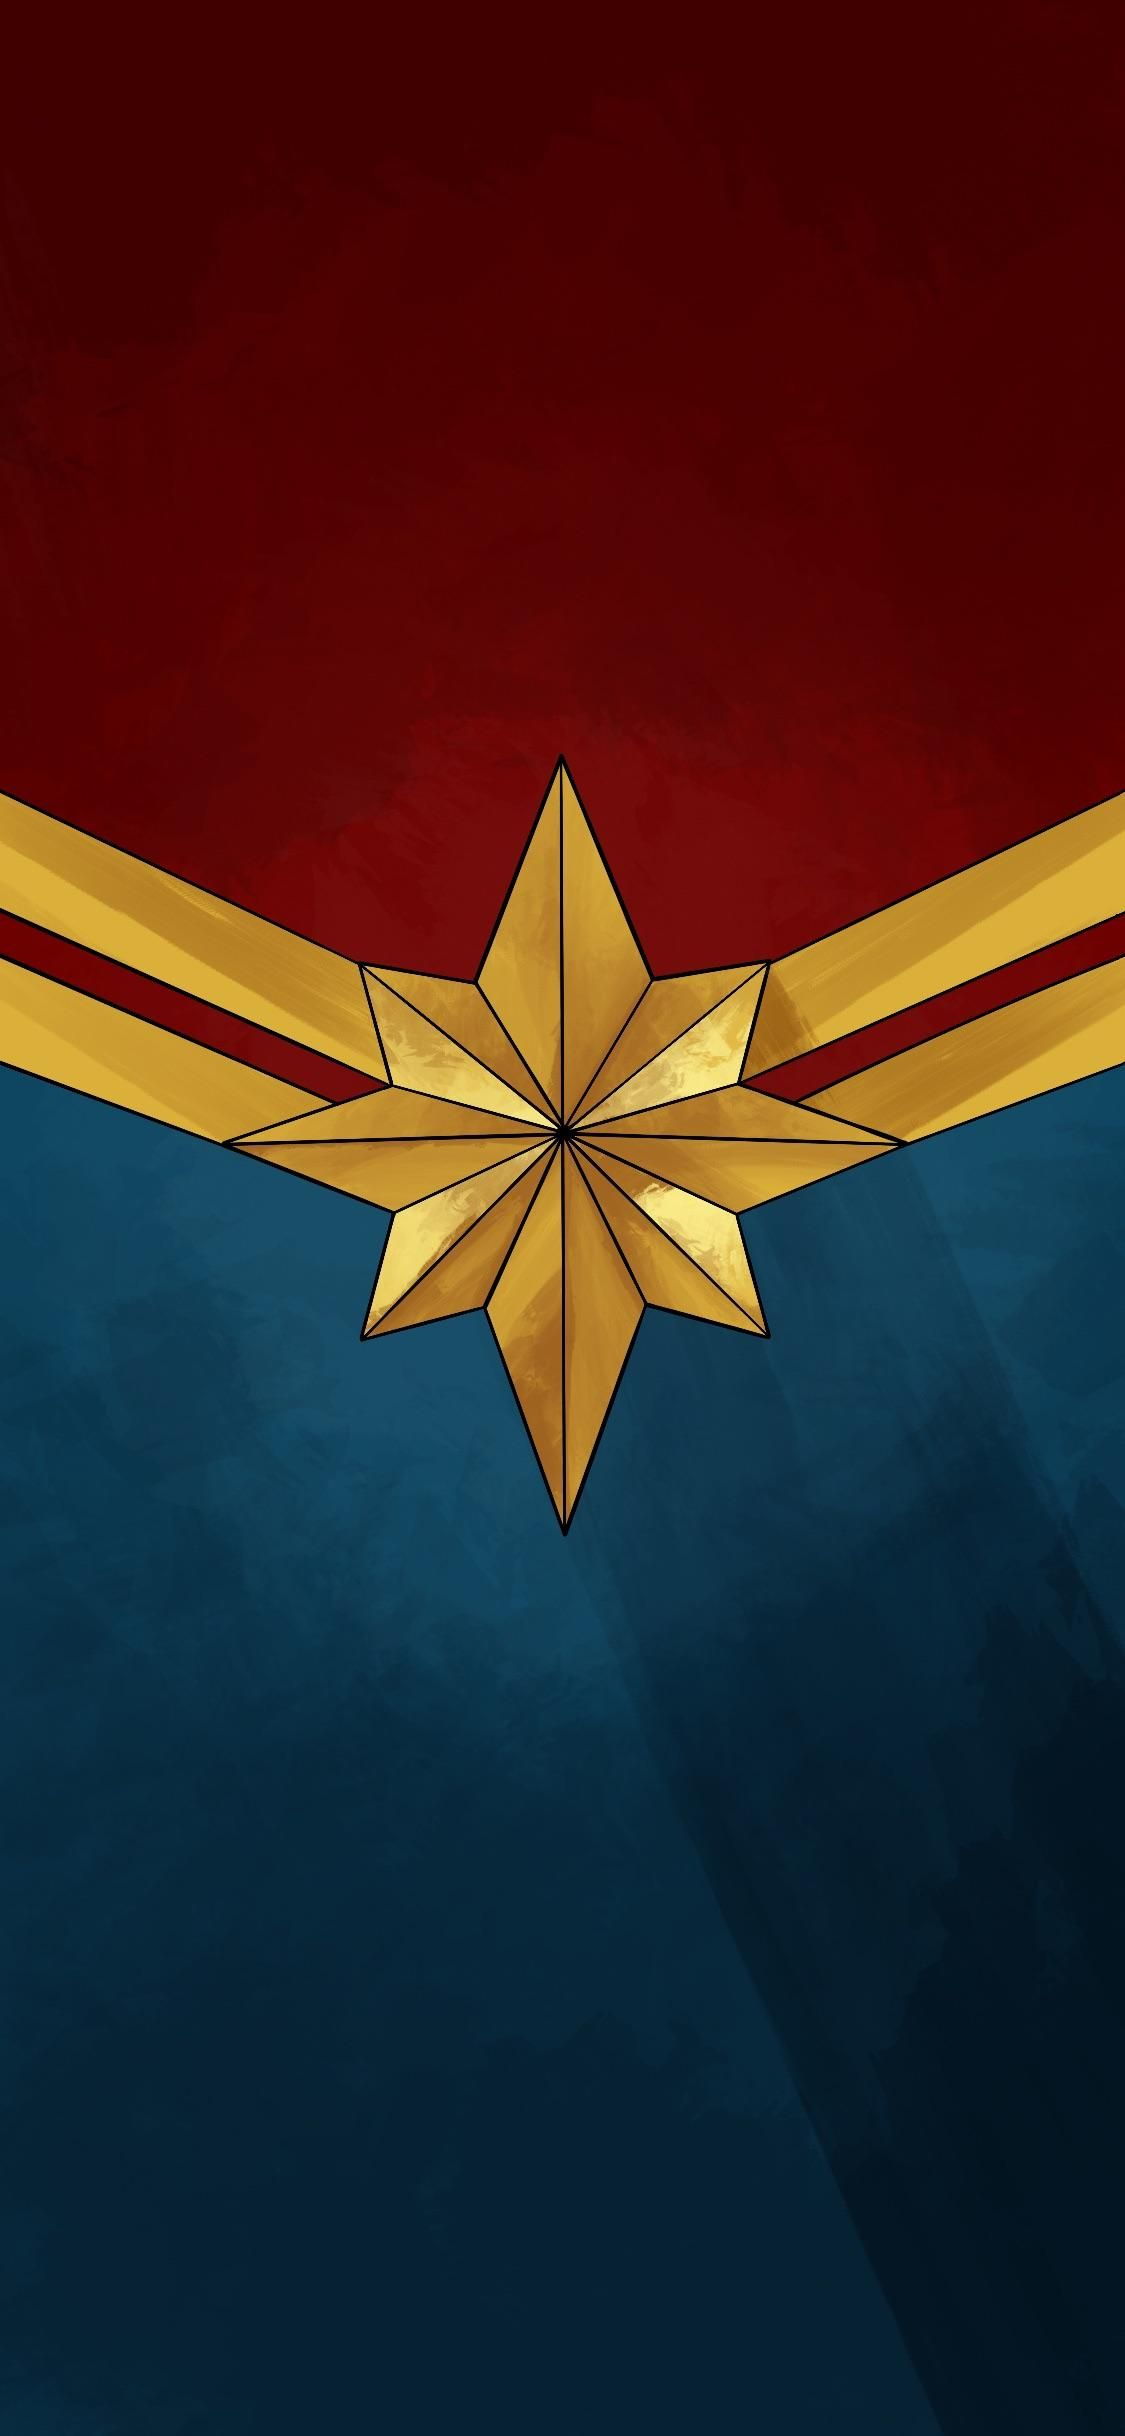 Just Finished Watching Captain Marvel And Bee Lined For Procreate Iphone Wallpapers Iphonewallpa Fall Wallpaper Iphone Wallpaper Fall Wallpaper Diy Crafts